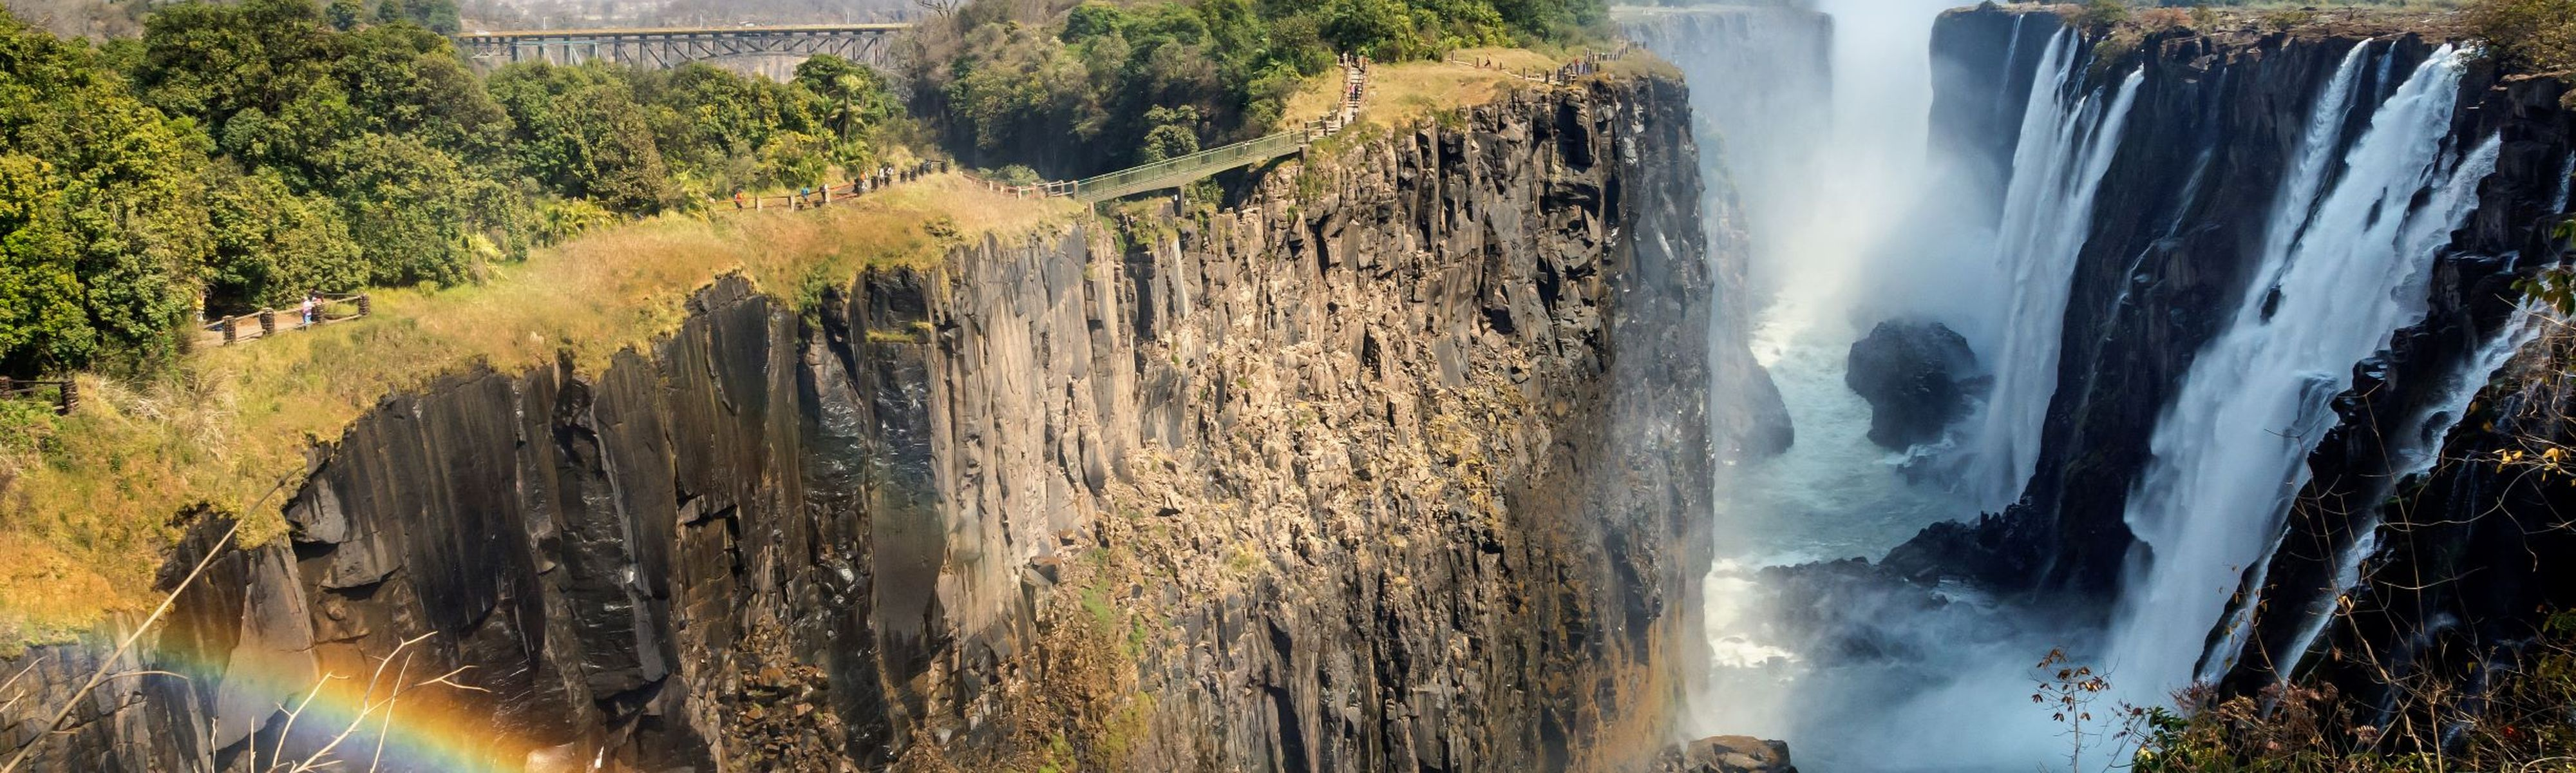 victoria falls with rainbow shining over waterfalls